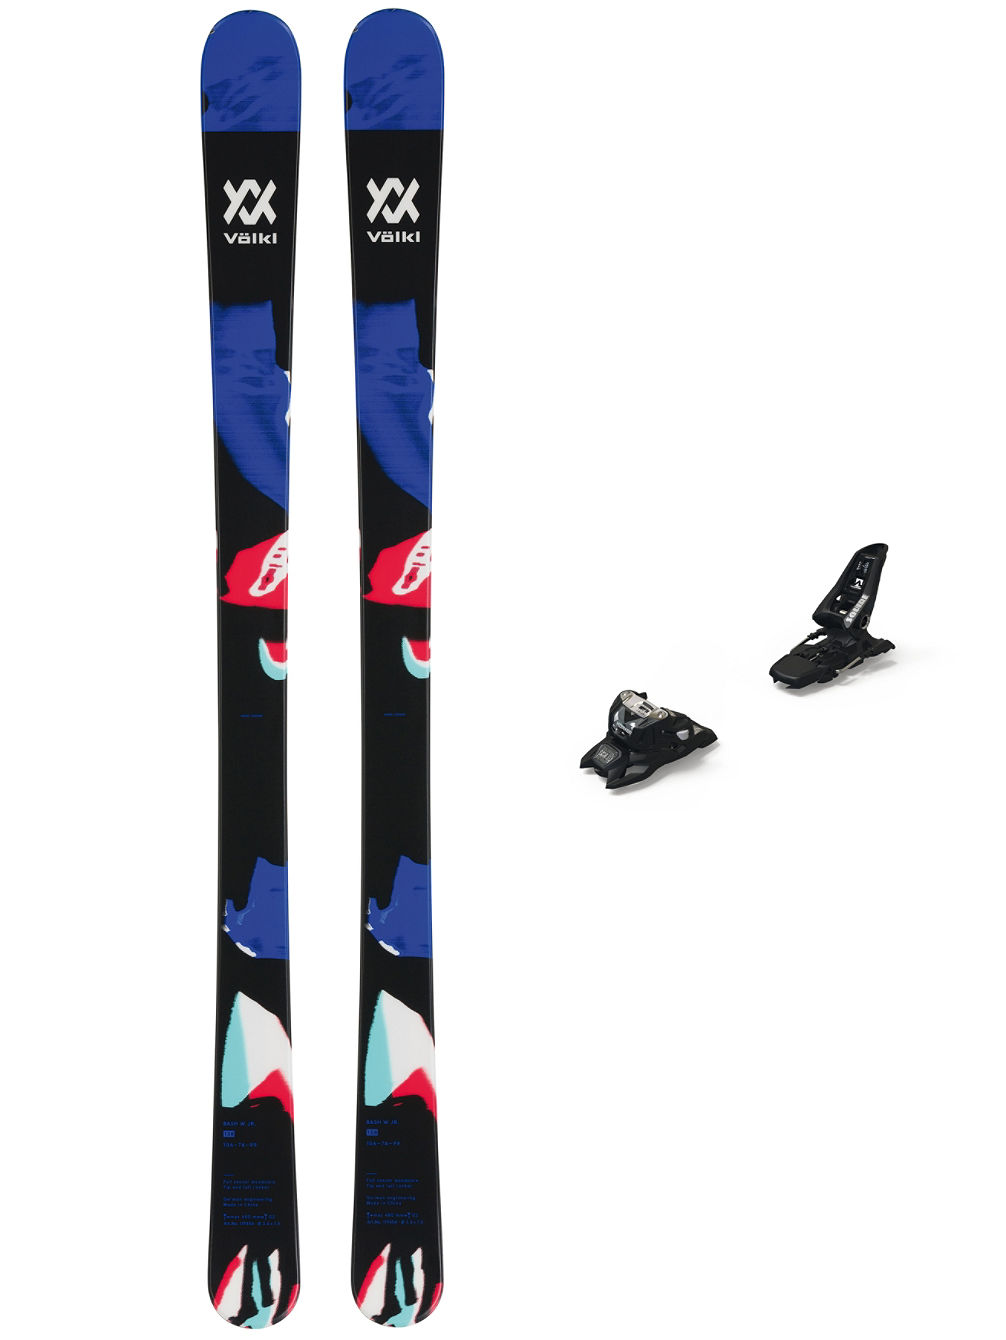 Bash 86 156 + Squire 11 ID 90 Black 2020 Conjunto Freeski